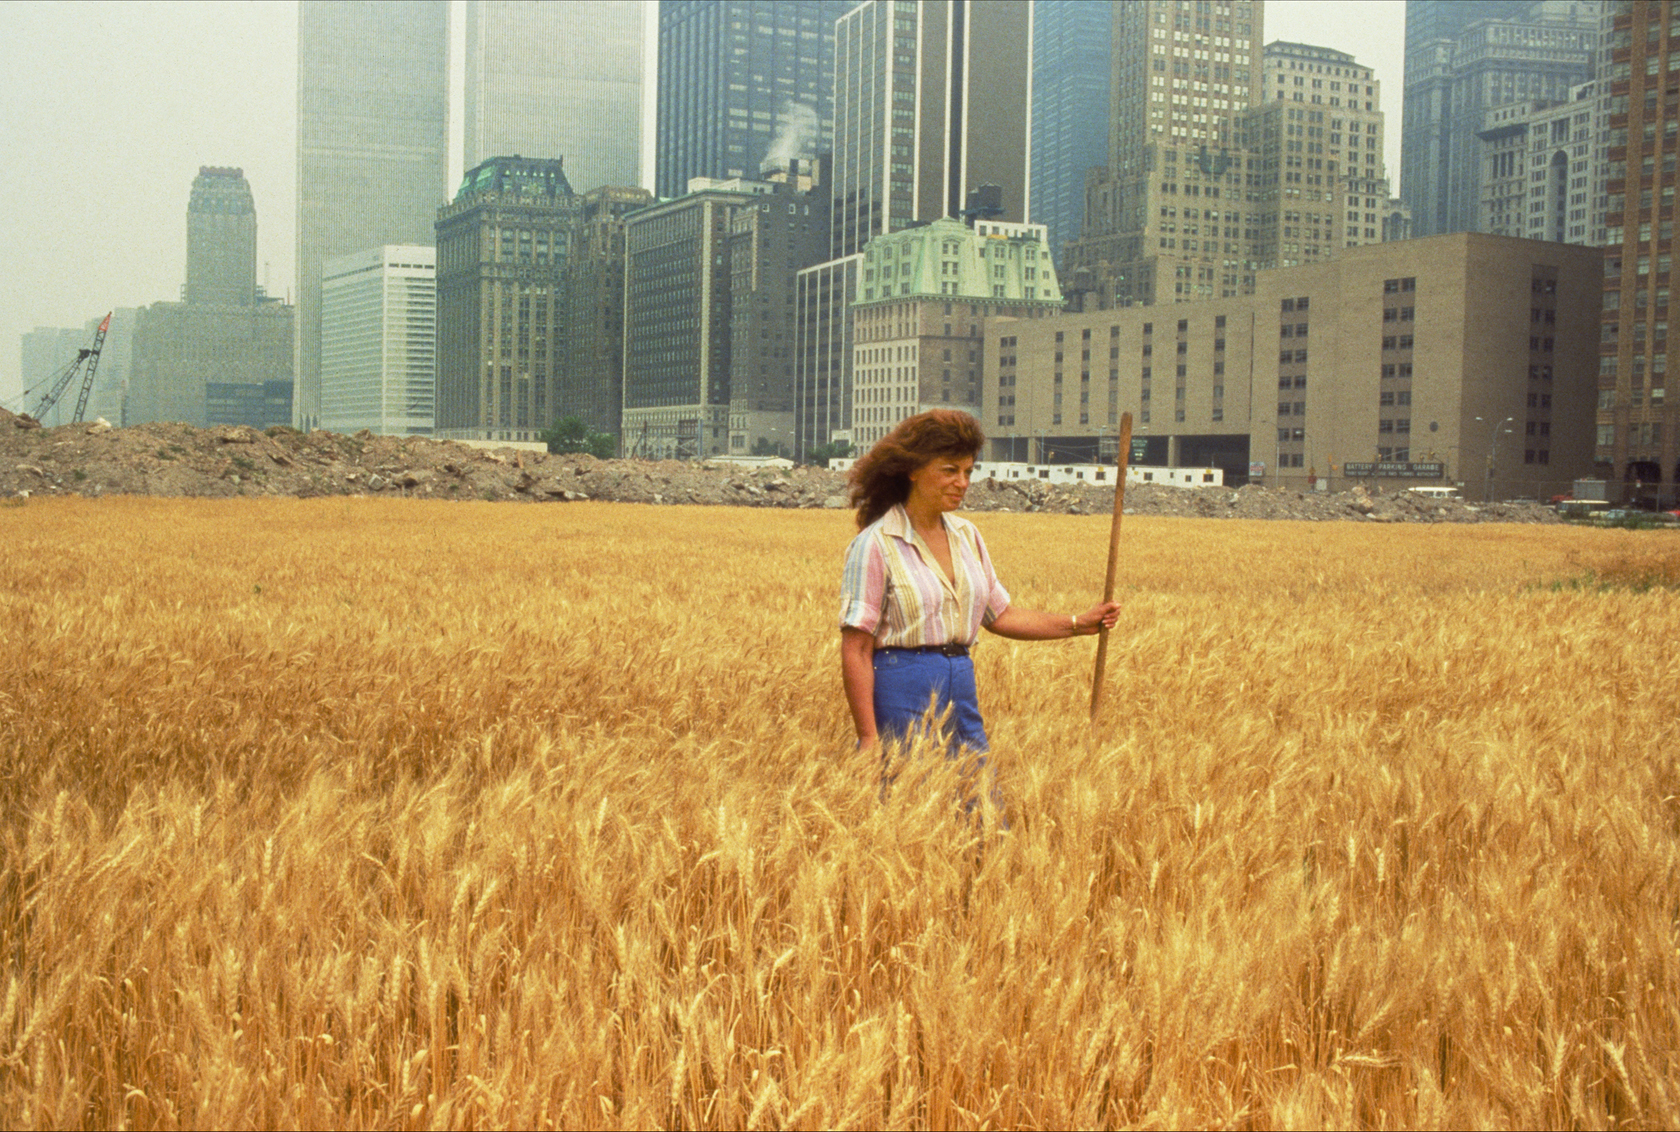 Wheatfield with Agnes Denes standing in the Wheatfield - A Confrontation: Battery Park Landfill (Downtown Manhattan), 1982, Agnes Denes